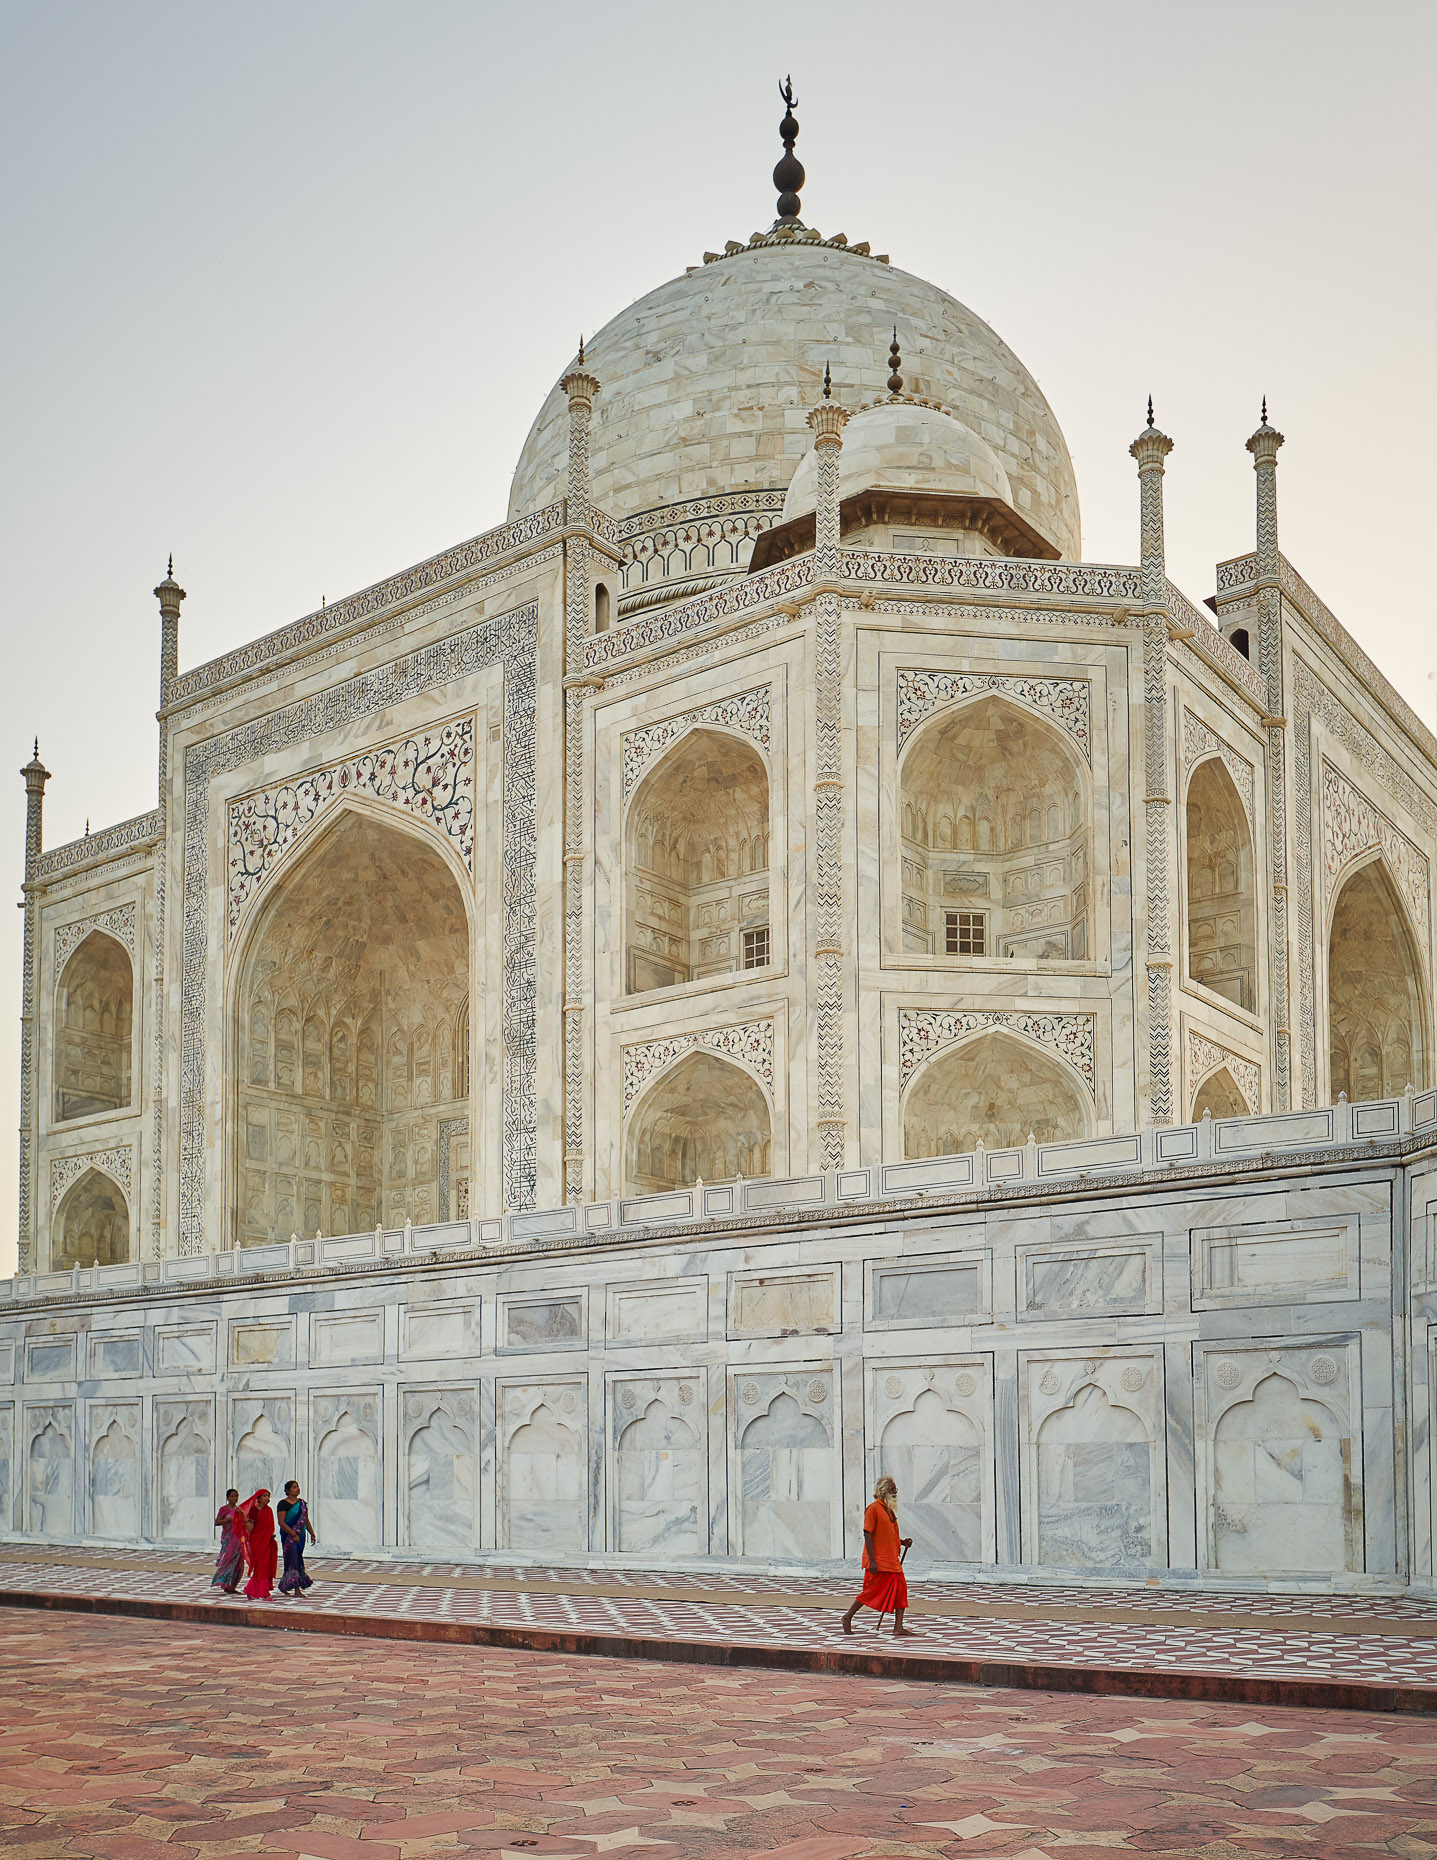 Personal_India_Agra_L10508811cropped-25